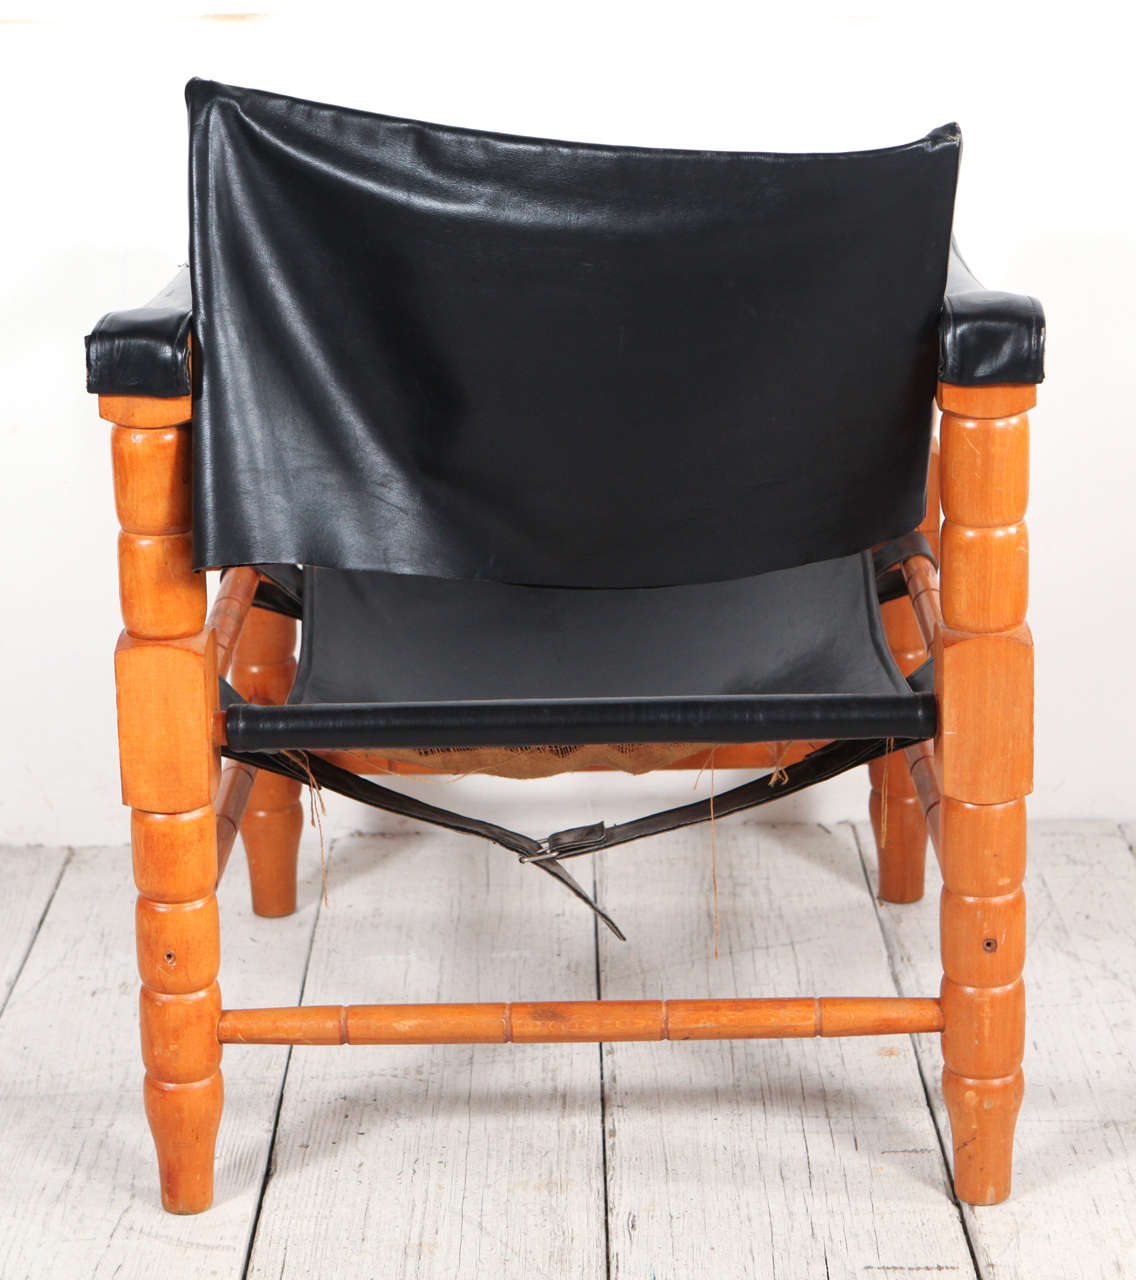 black spindle chair gym reviews 2018 pair of safari style leather and wood framed